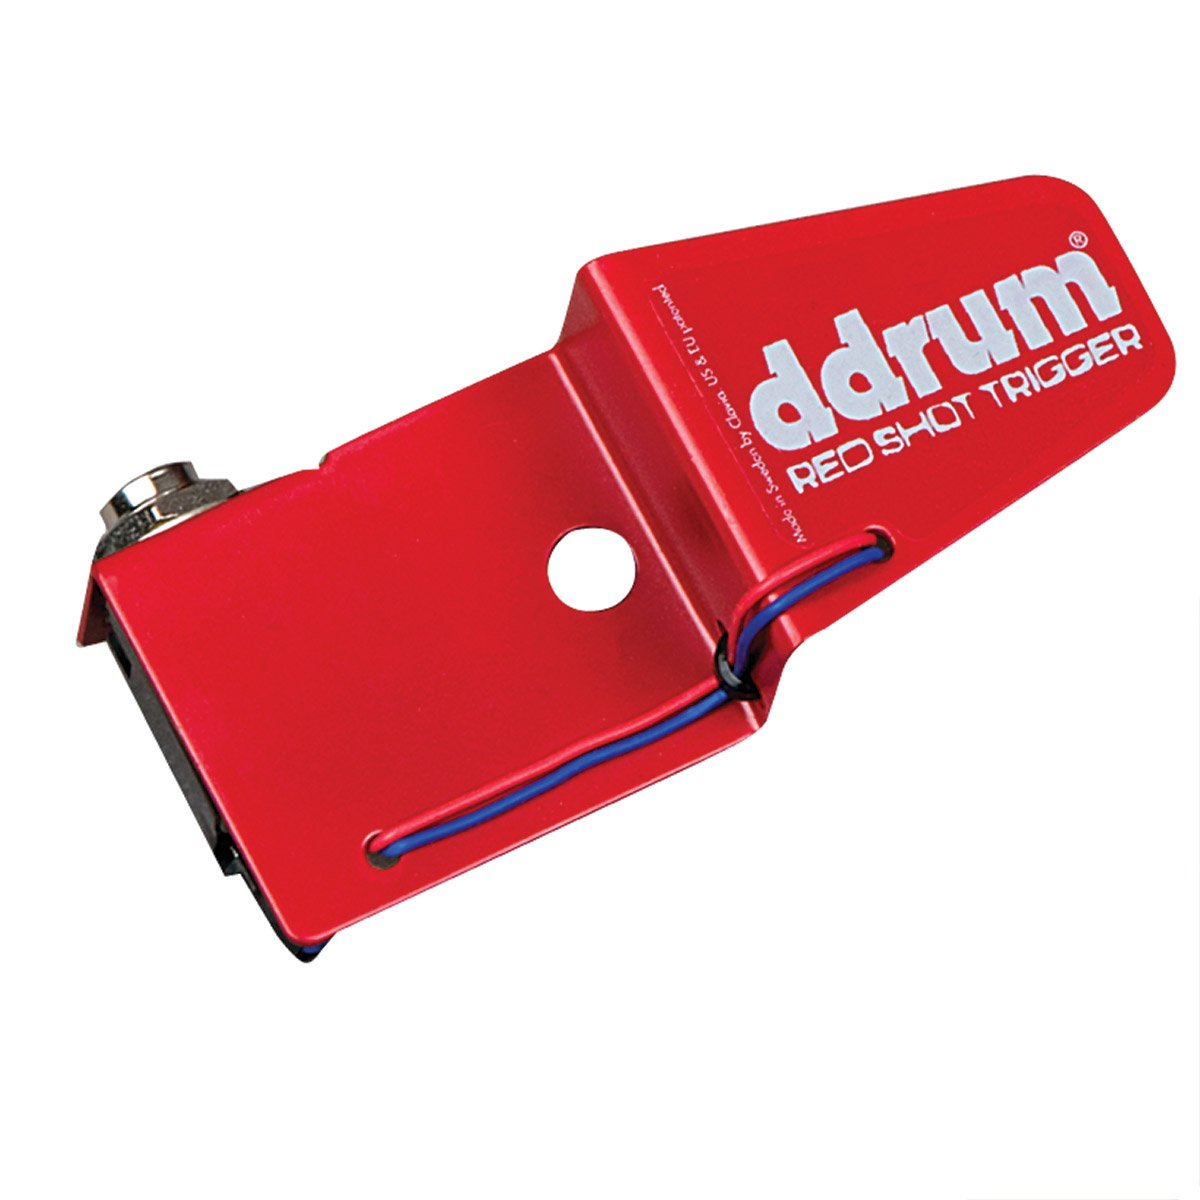 Ddrum Trigger pour tom/caisse claire Red Shot RS